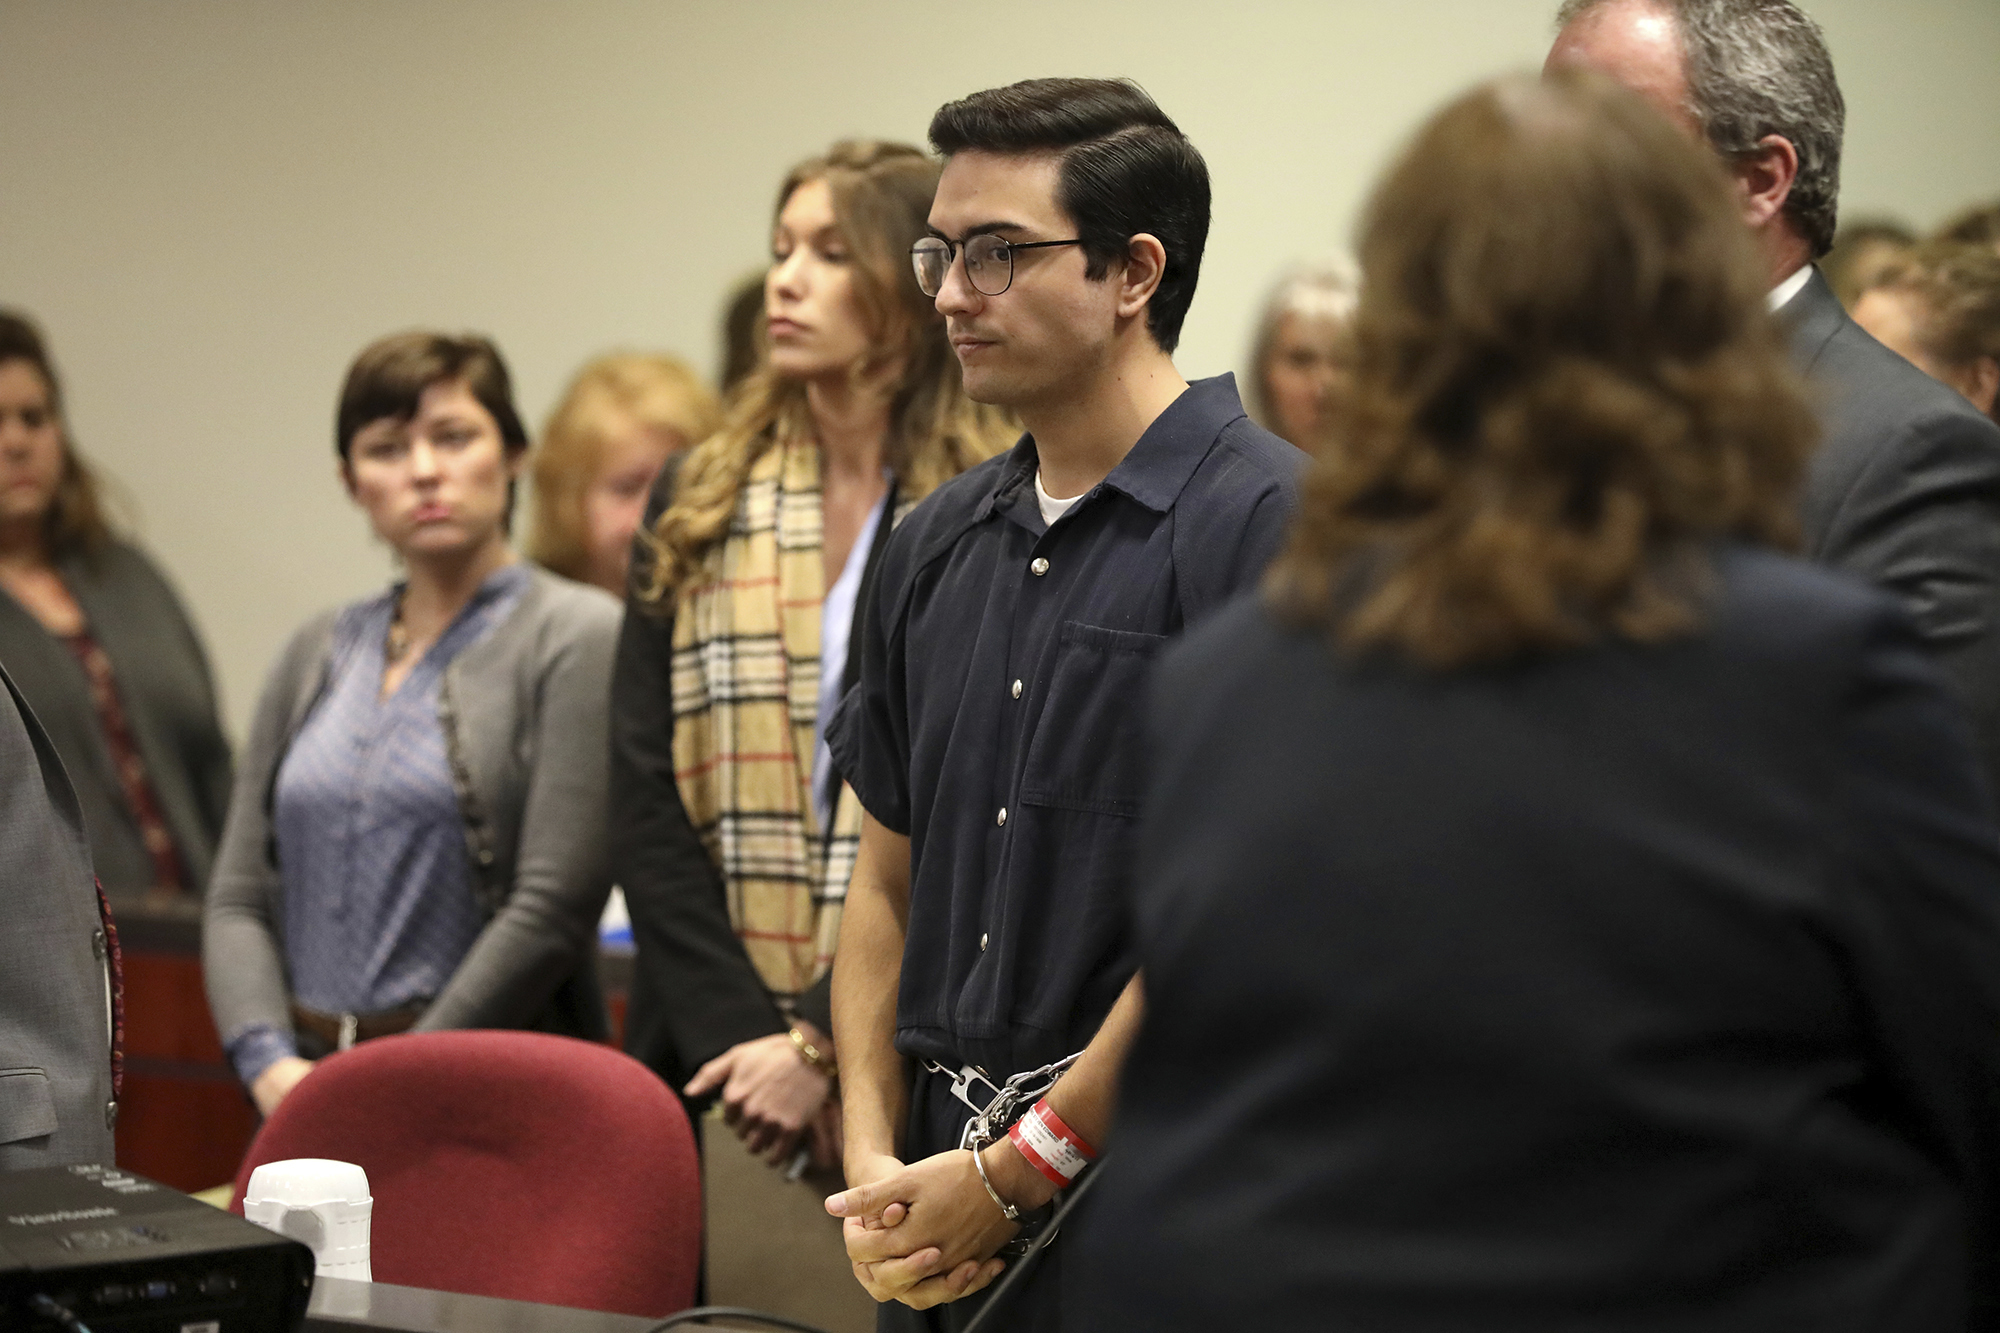 Steven Jones was sentenced to a six year prison term Tuesday, Feb. 11, 2020, in Flagstaff, Ariz., after taking a plea deal on one count of manslaughter and three counts of aggravated assault stemming from an October 2015 shooting on the Northern Arizona University campus which left one student dead and three others wounded.